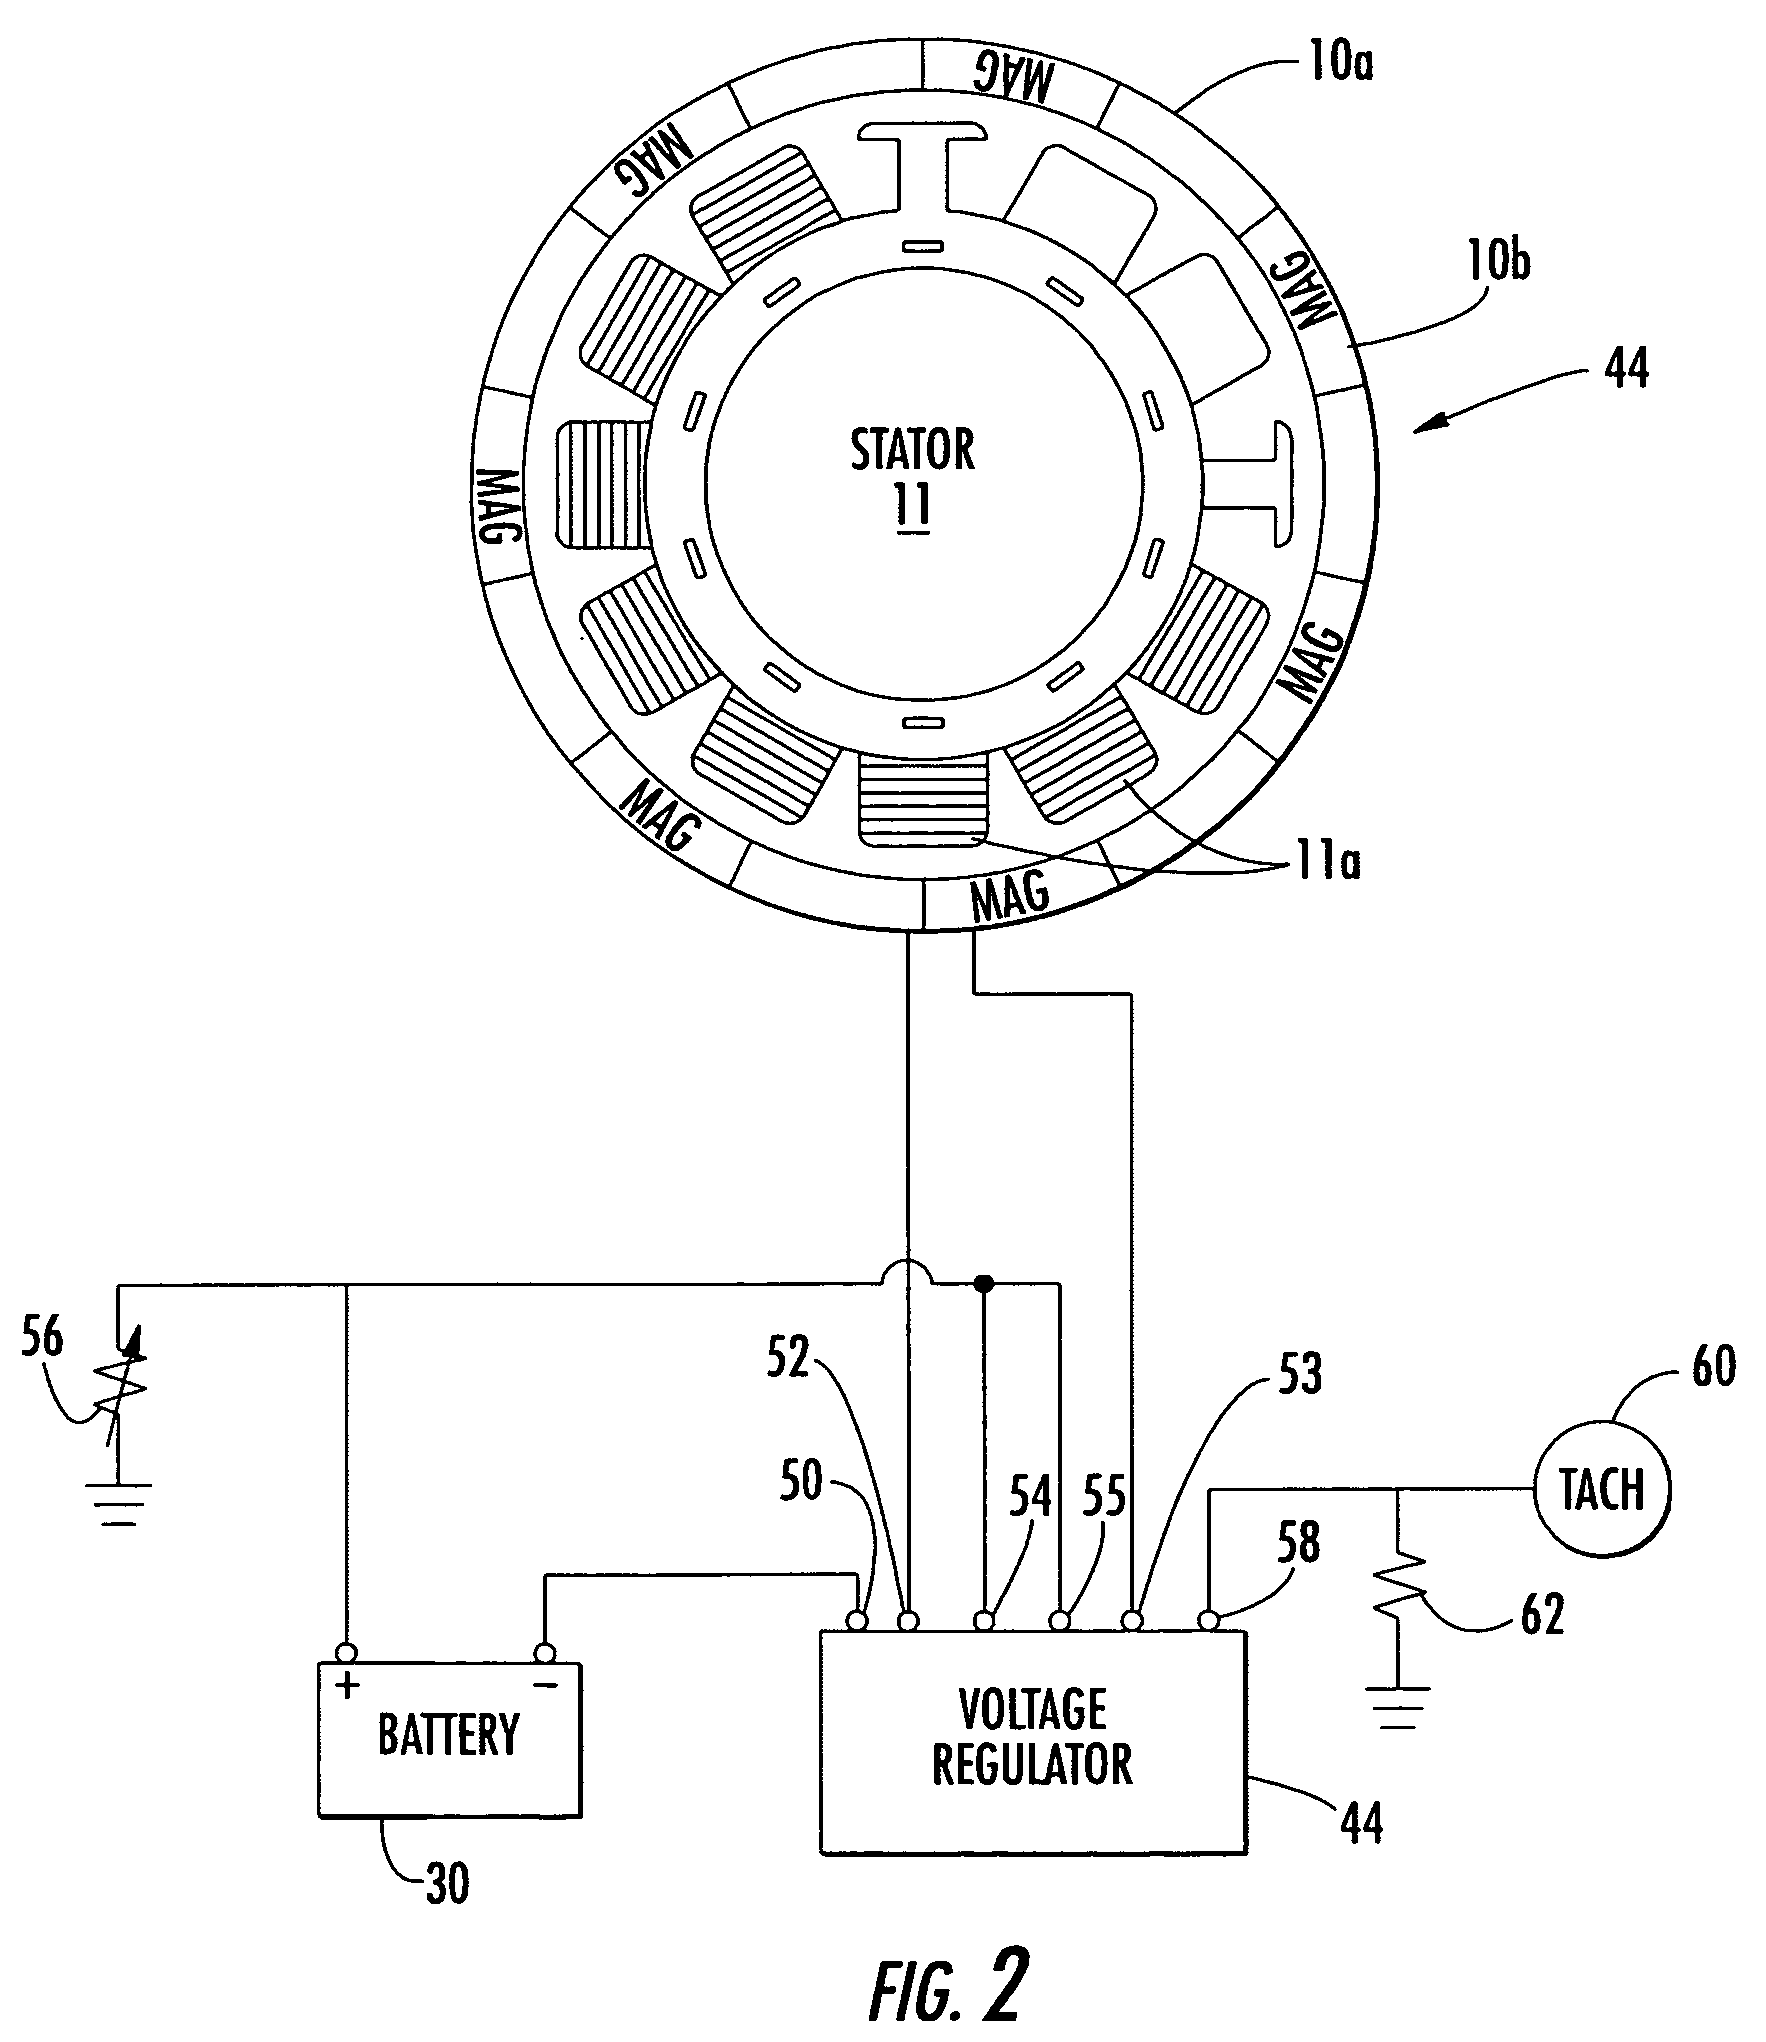 Patent Us6982545 - Alternator System With Temperature Protected Voltage Regulator